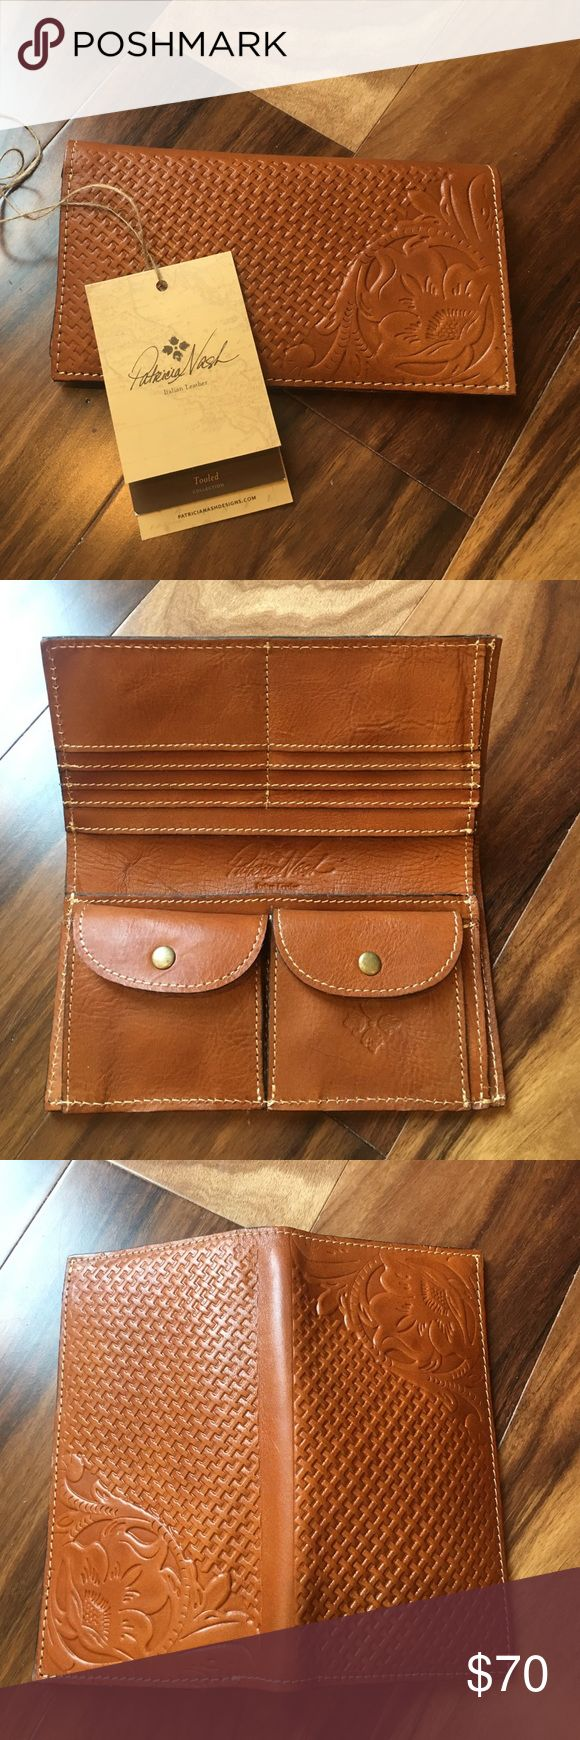 """NWT Patricia Nash Italian Leather Wallet NWT Italian Leather bifold wallet by Patricia Nash. Beautiful tooled rose design on front and back. 8 internal slots for cards, 2 larger bill slots, and 2 snap closure pockets. Measures 7 5/8"""" x 4"""" x 7/8"""" when folded shut empty. I have one of her handbags and the leather wears beautifully! Patricia Nash Bags Wallets"""